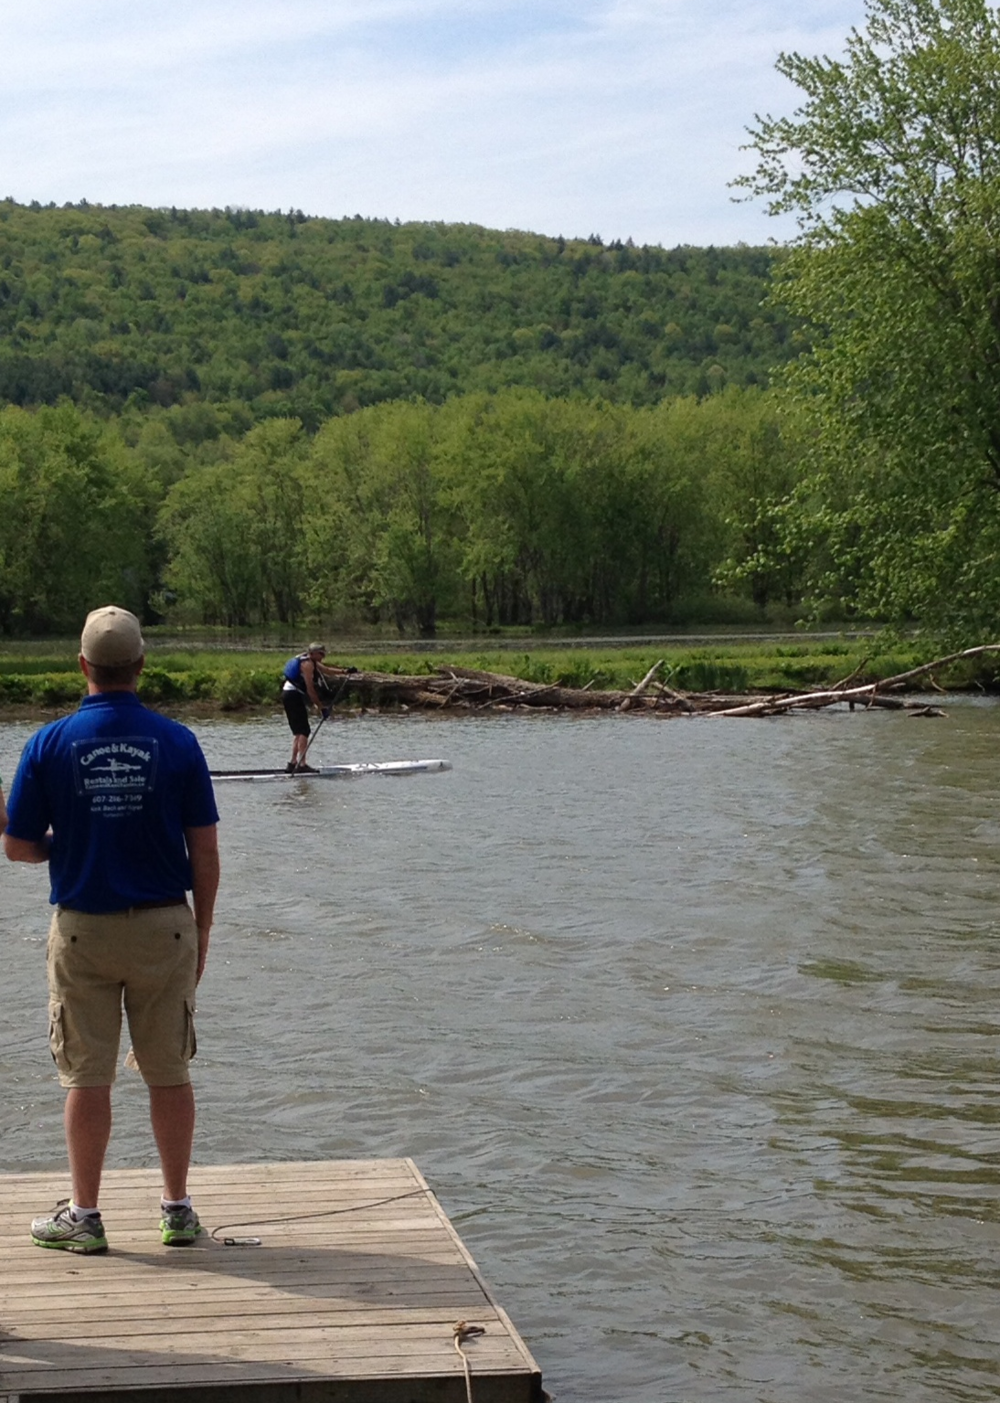 Brent witnessing paddleboard history in the      making. This gentleman was the first ever to     complete the 70 mile General Clinton Canoe      Regatta on a stand up paddelboard!